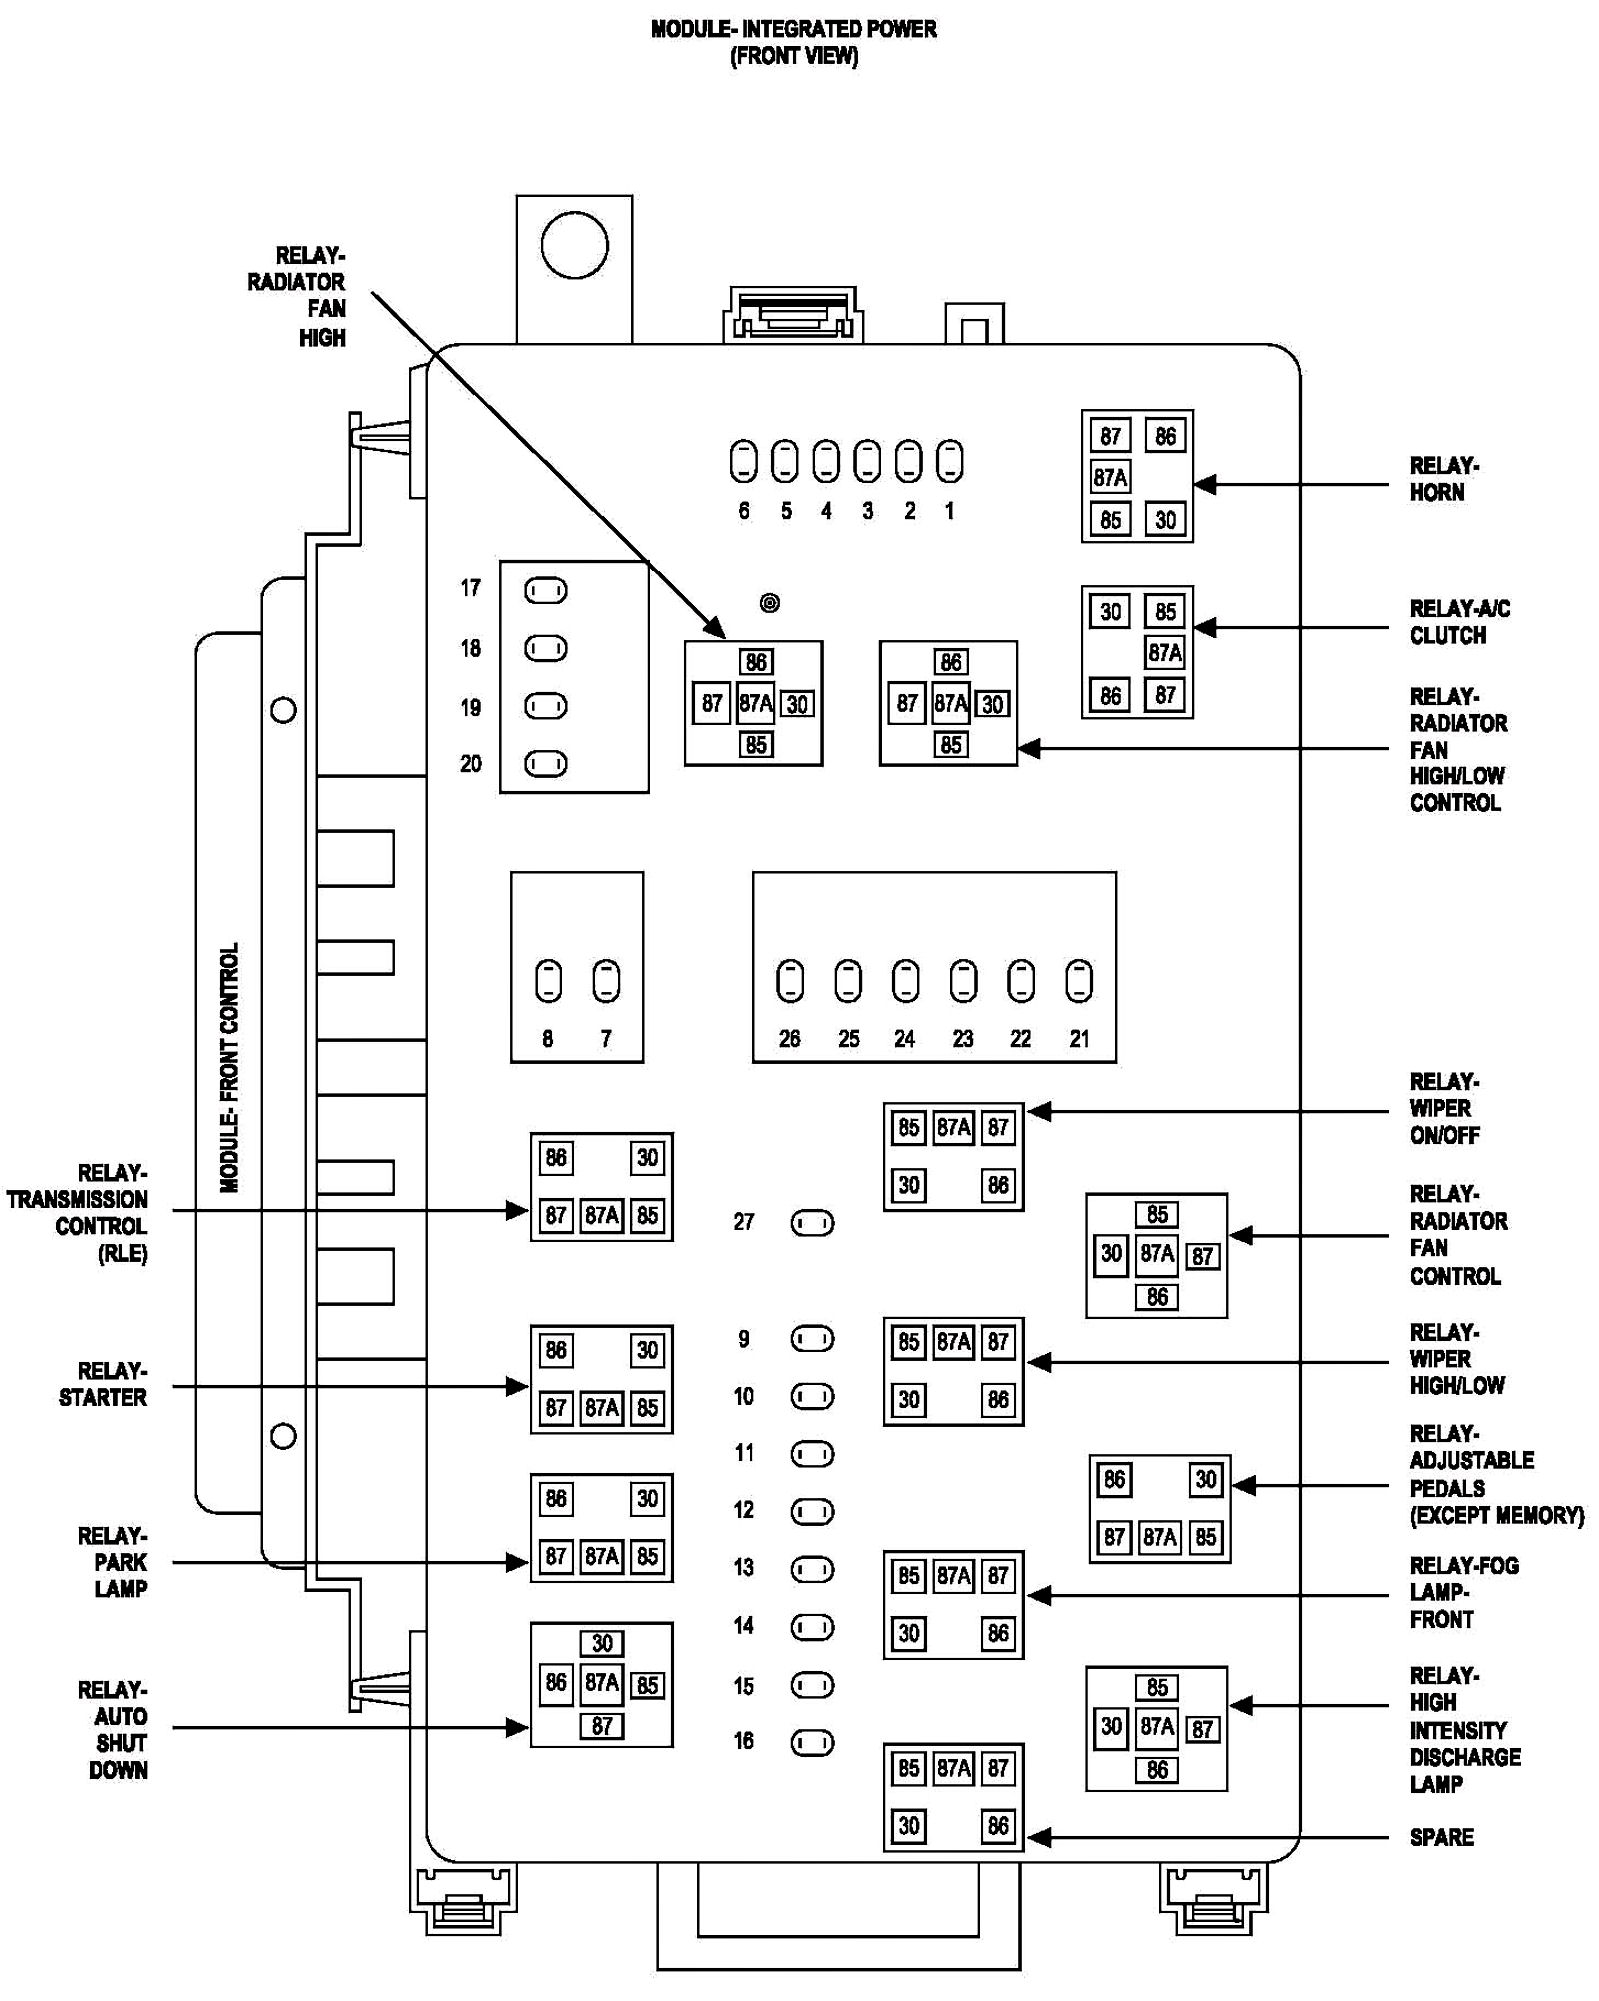 hight resolution of fuse gm box 15940497 schema diagram database fuse gm box 15940497